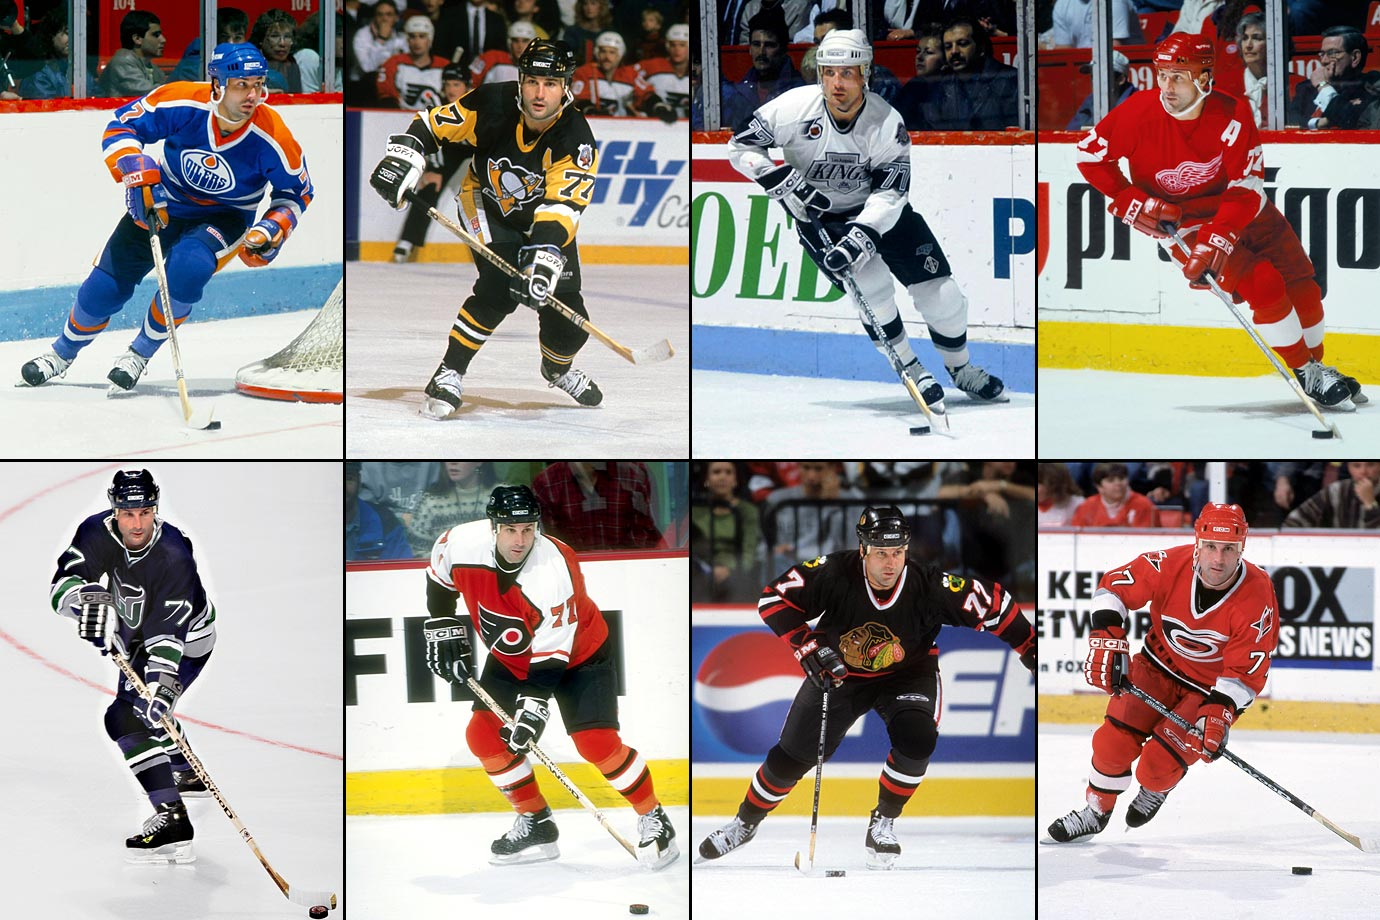 Edmonton to Pittsburgh (11/24/87), Pittsburgh to Los Angeles (2/19/92), Los Angeles to Detroit (1/29/93), Detroit to Hartford (10/9/96), Hartford to Philadelphia (12/15/96), Philadelphia to Chicago (6/27/98), Chicago to Carolina (12/29/98)